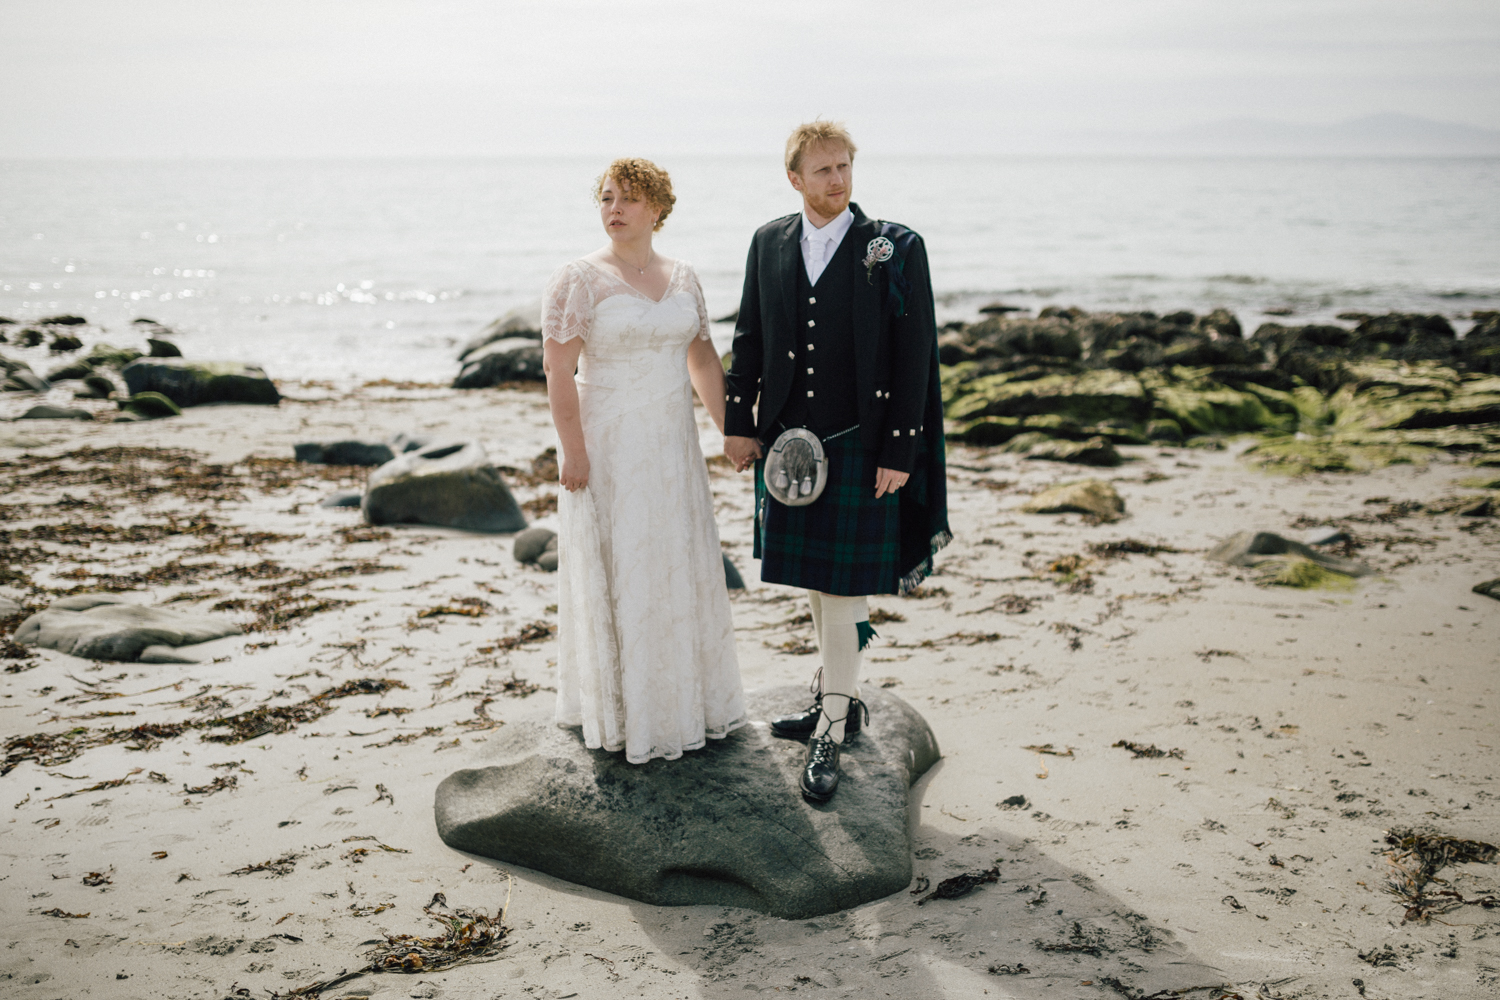 capyture-wedding-photographer-destination-crear-scotland-624